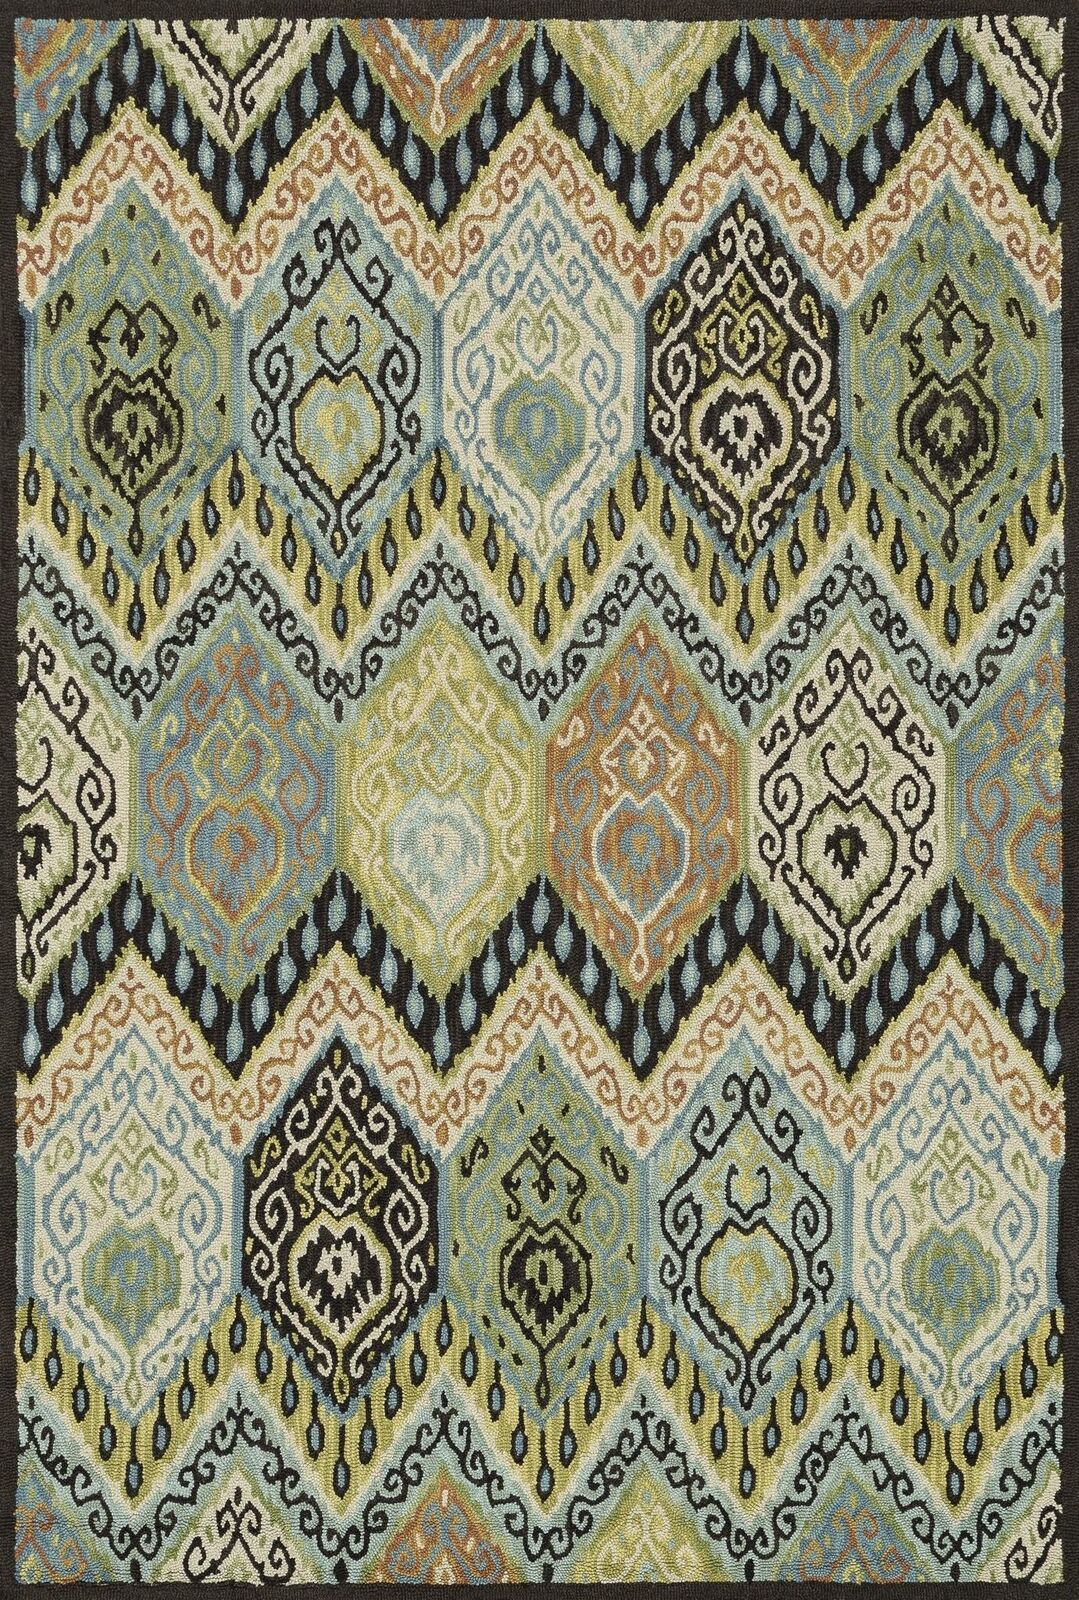 9'x13' Loloi Rug Mayfield Mayfield Mayfield Wool Loop Multi Farbe Hand Hooked Transitional MF-09 ed73fd